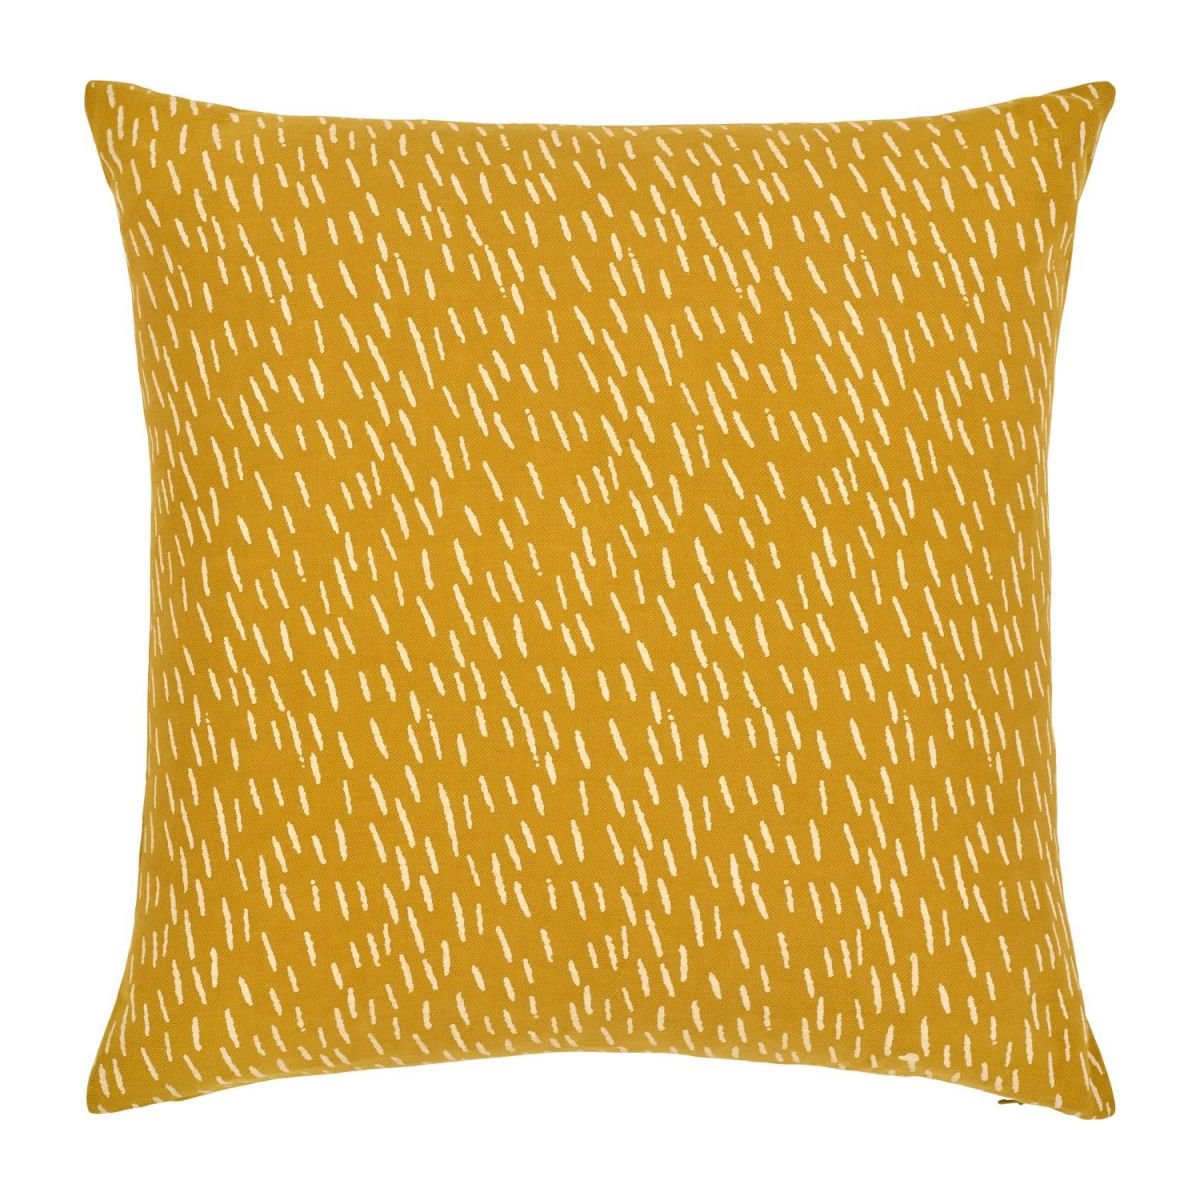 Cushion made of cotton 45x45, yellow with patterns n°1